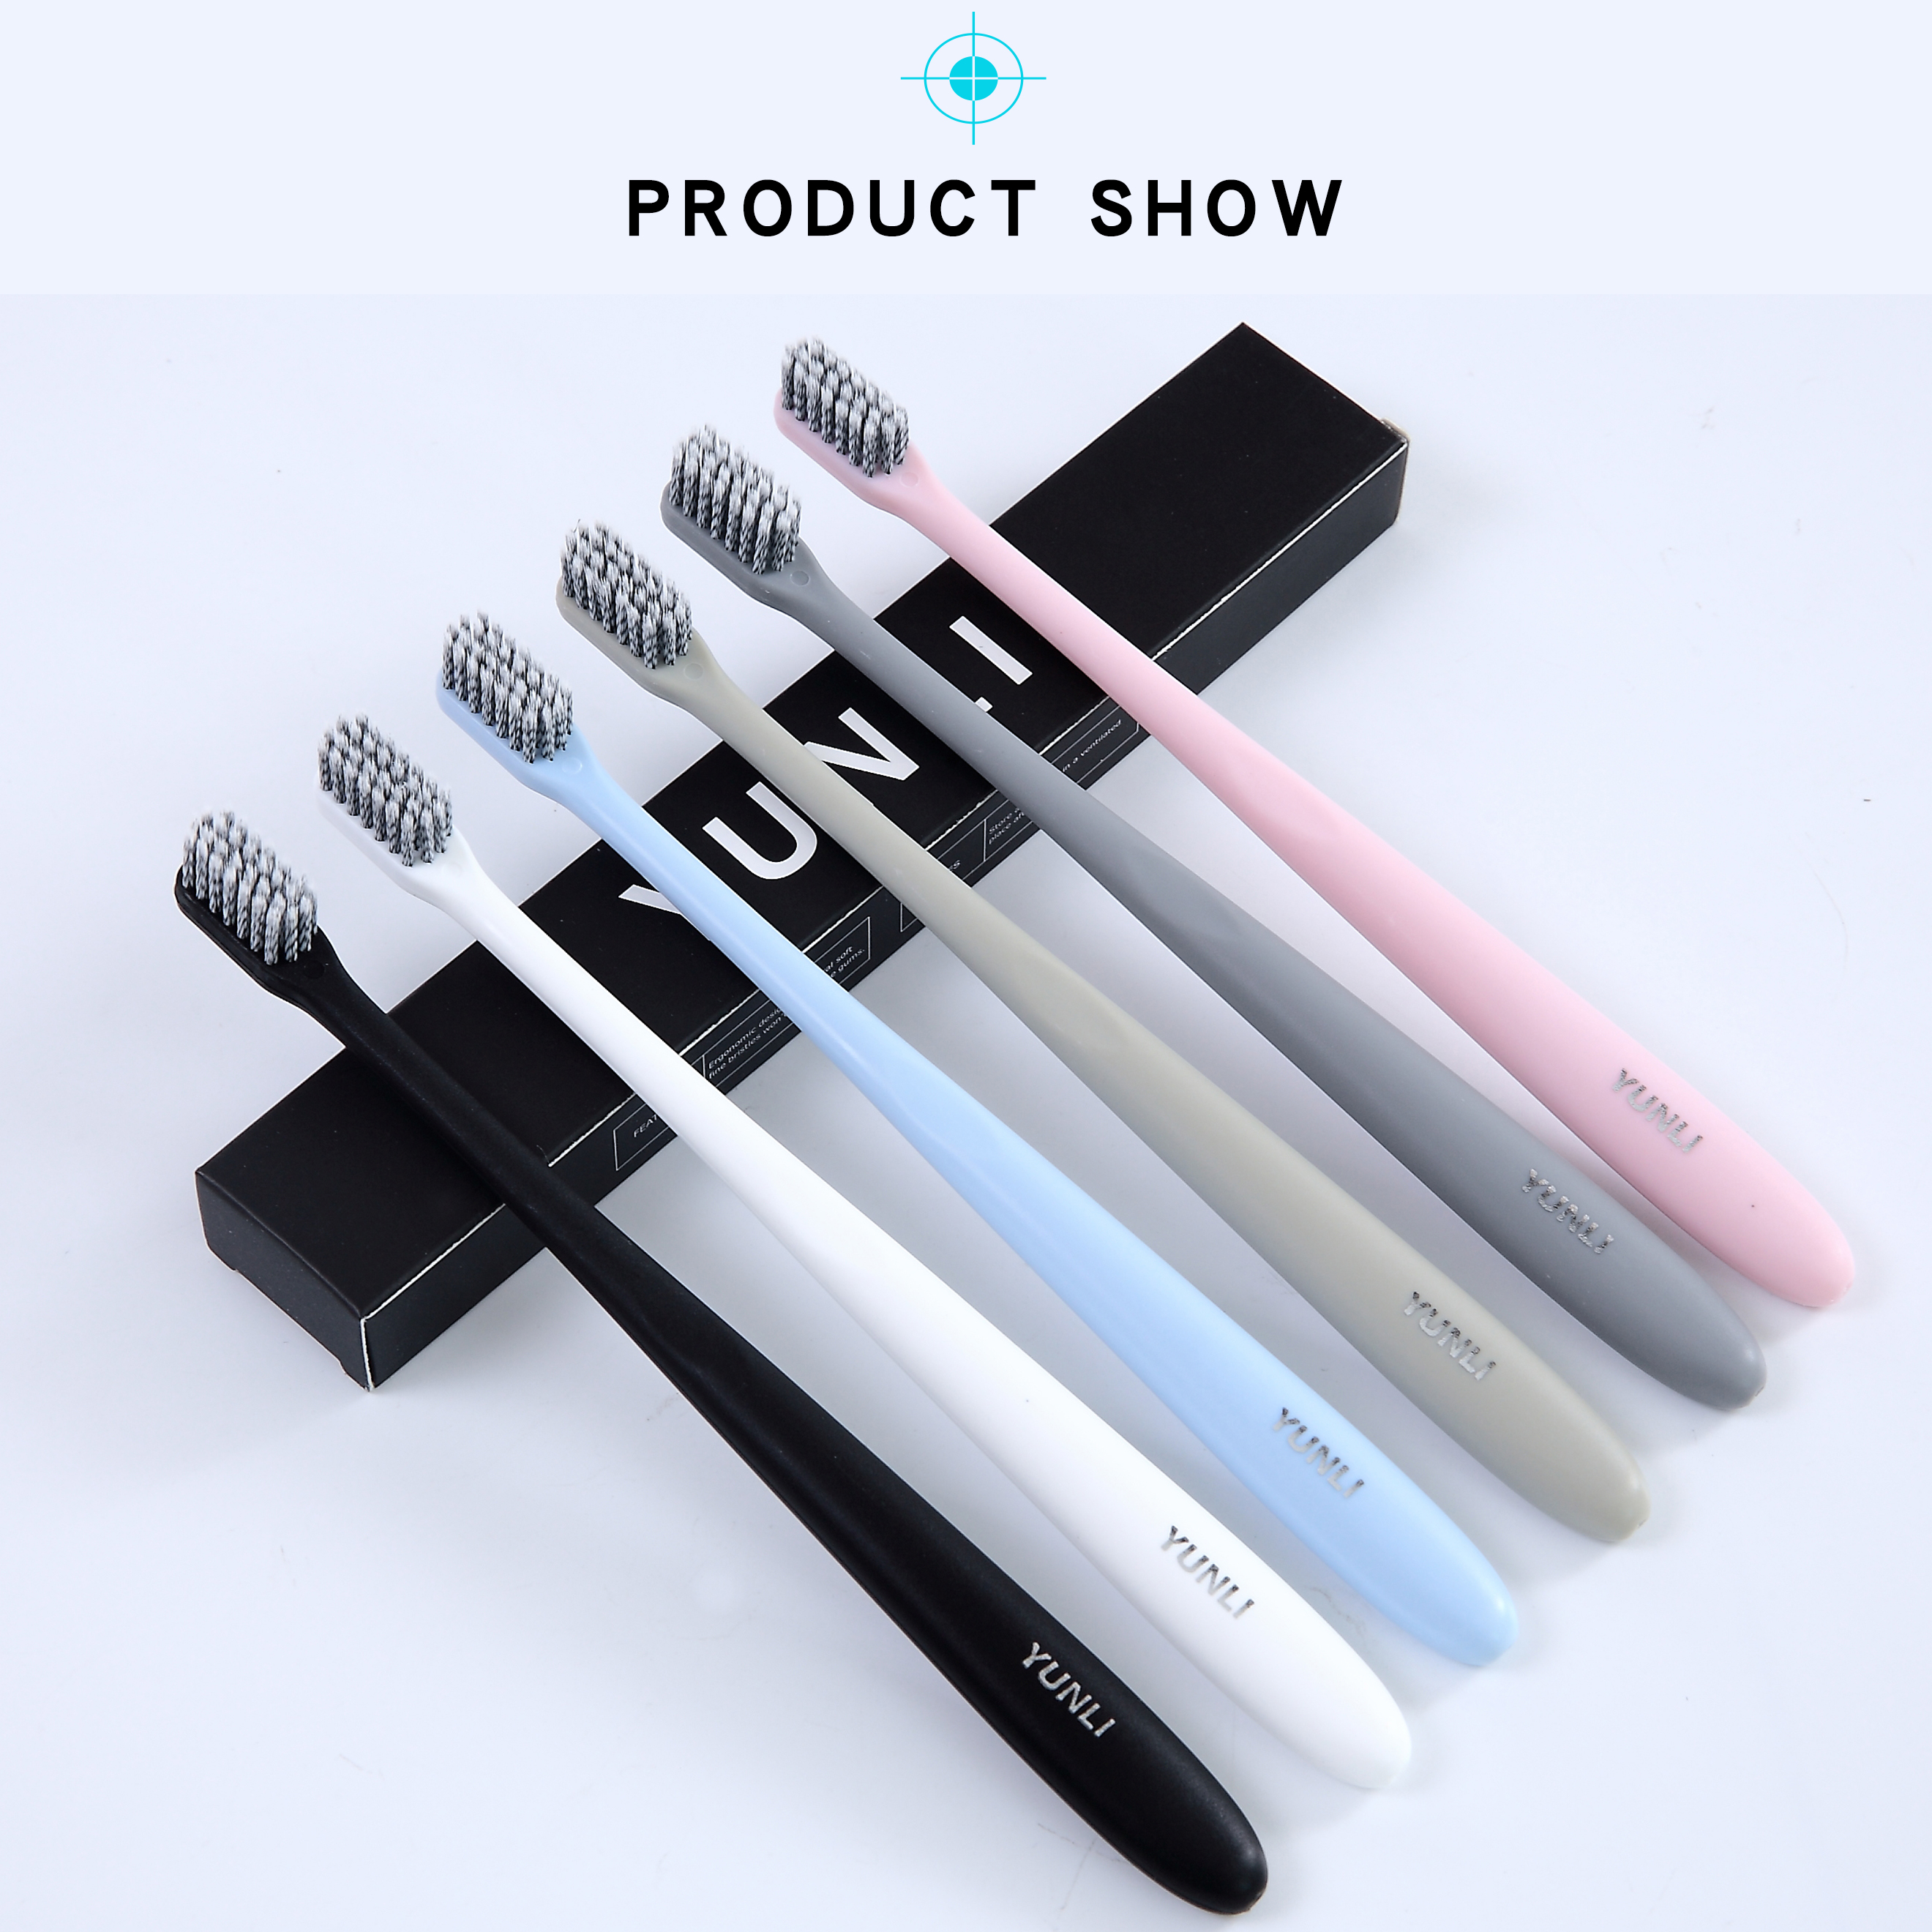 YUNLI 6 With Multi-color Super-soft Toothbrush With Independent Packaging, Suitable For Sensitive Gingiva Of Adults And Children